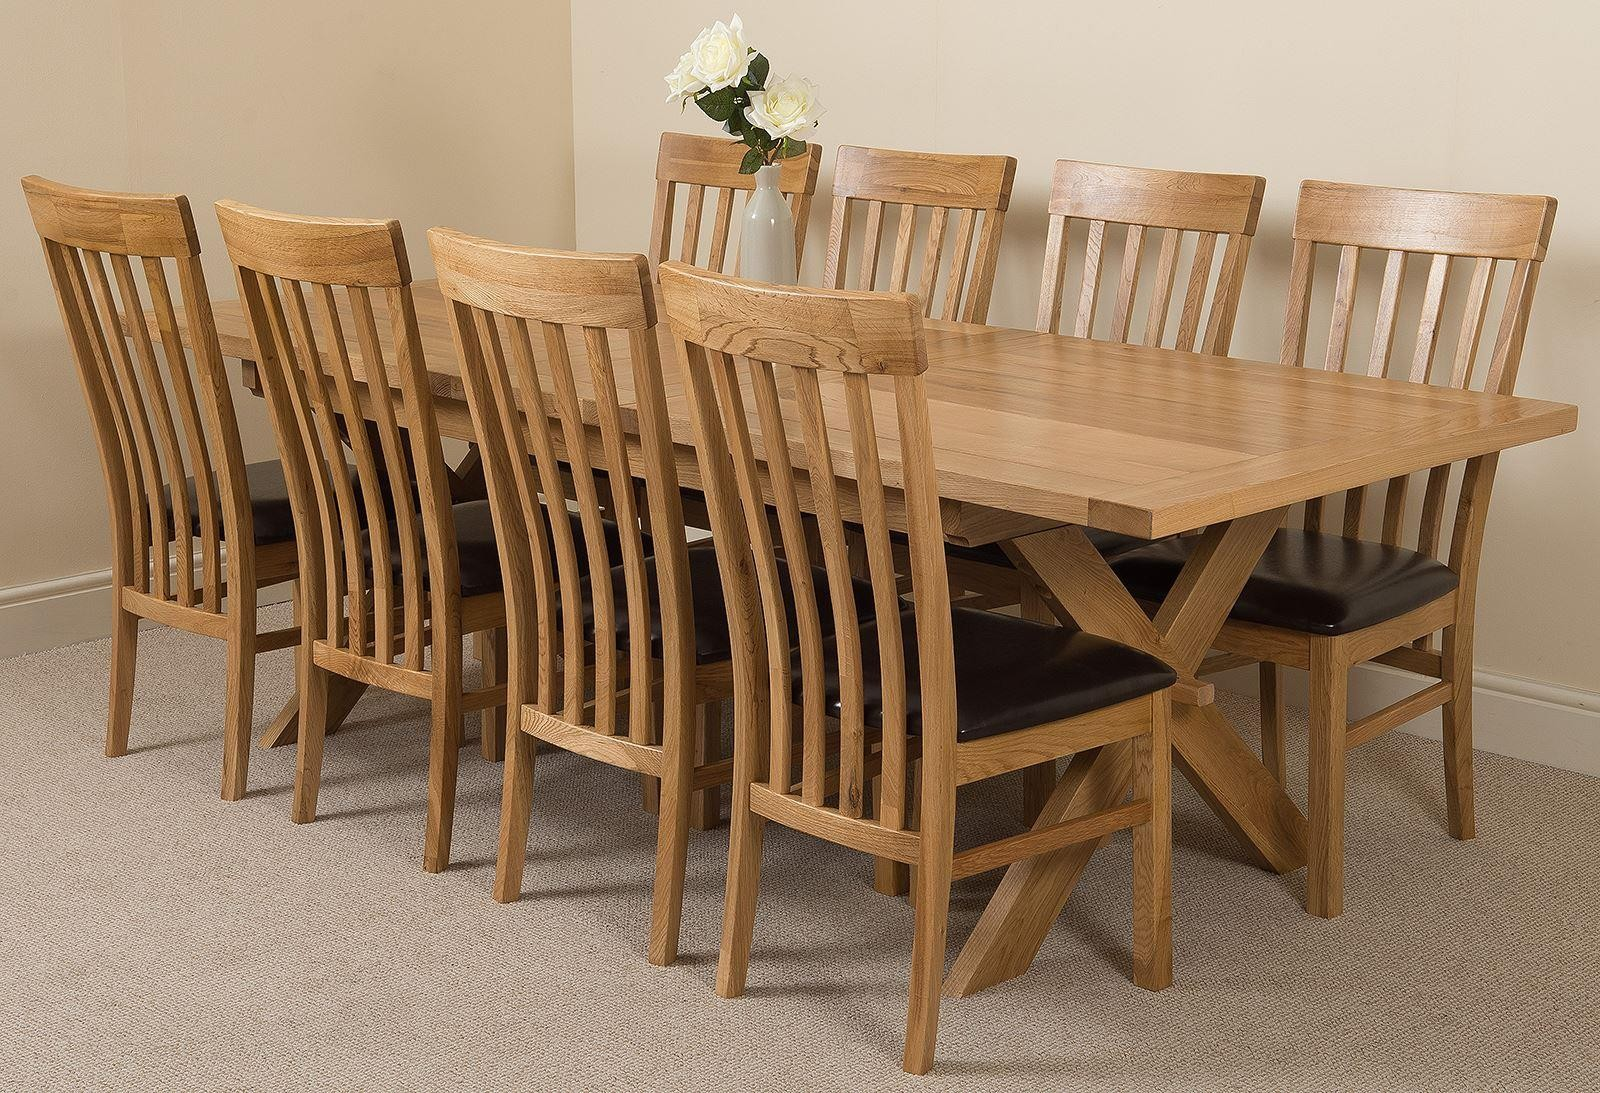 Vermont Solid Oak 200cm-240cm Crossed Leg Extending Dining Table with 8 Harvard Solid Oak Dining Chairs [Light Oak and Brown Leather]